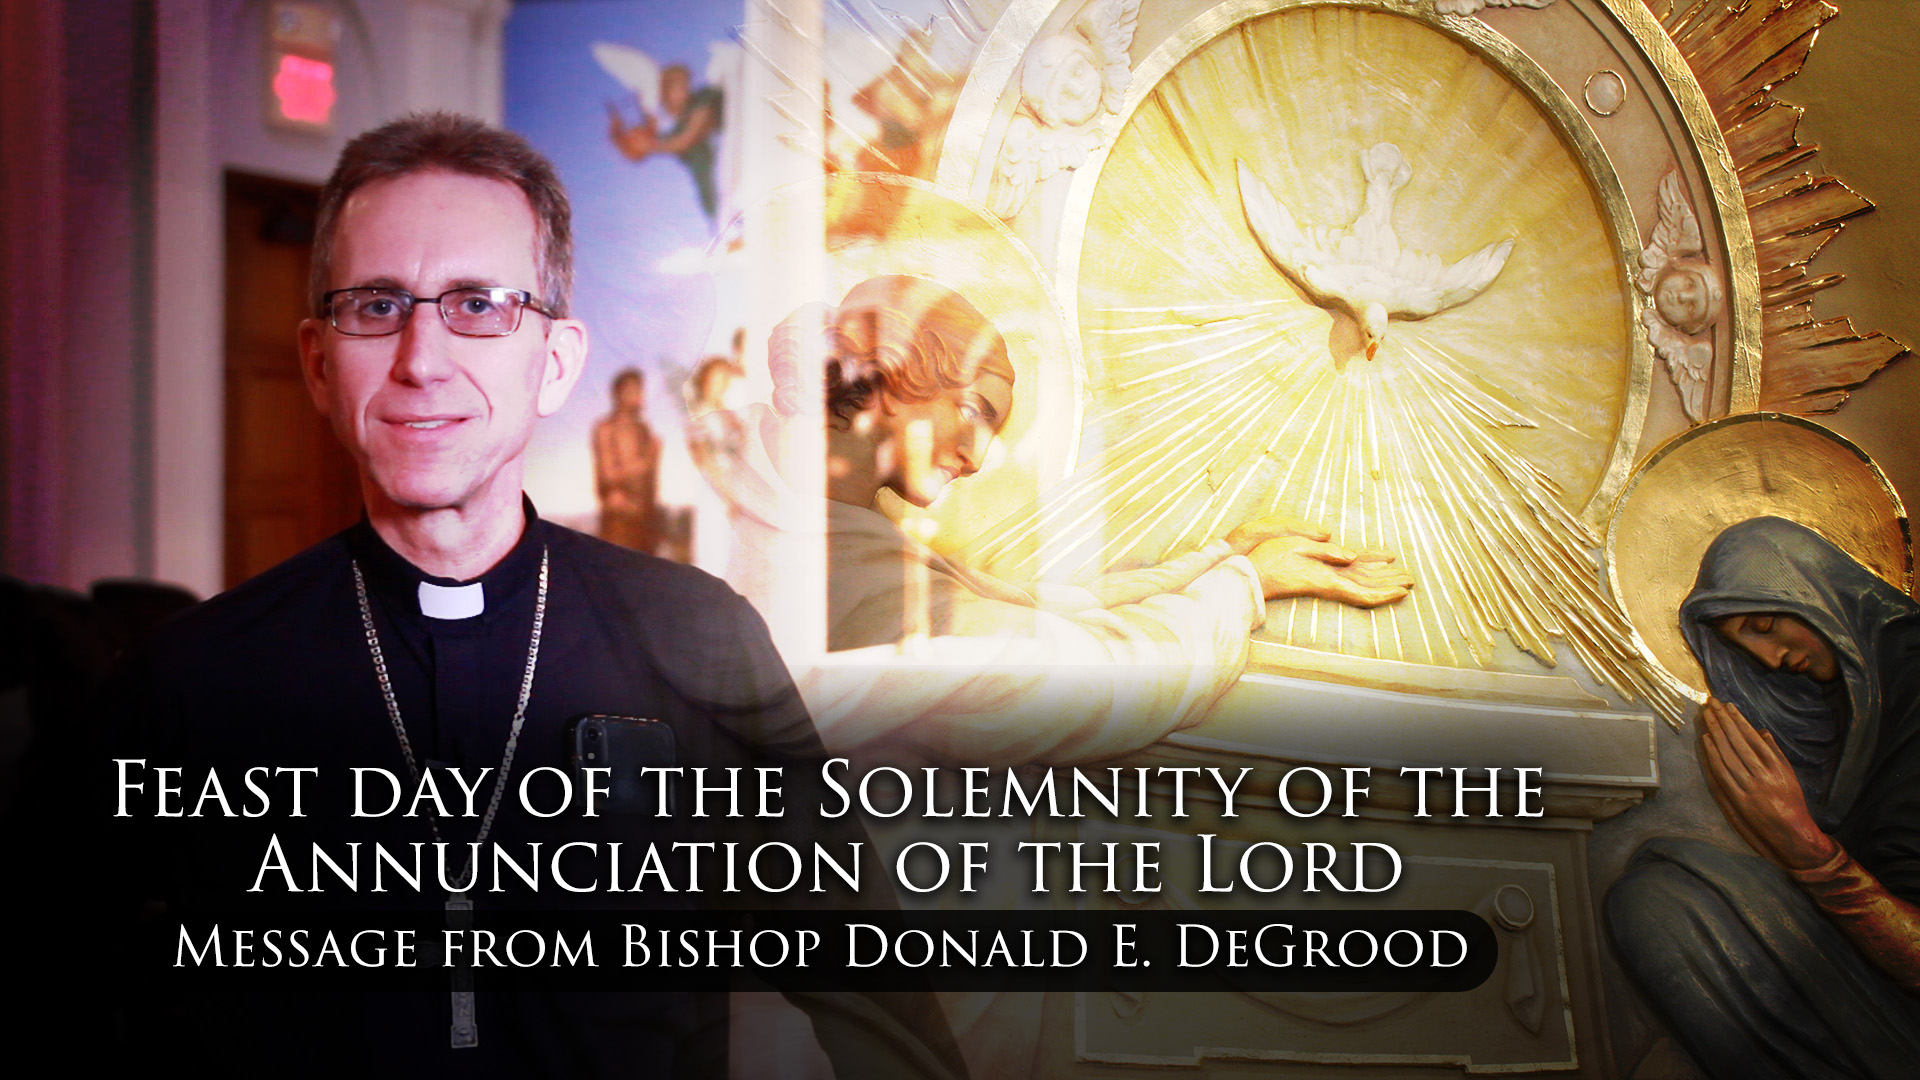 Feast day of the Solemnity of the Annunciation of the Lord